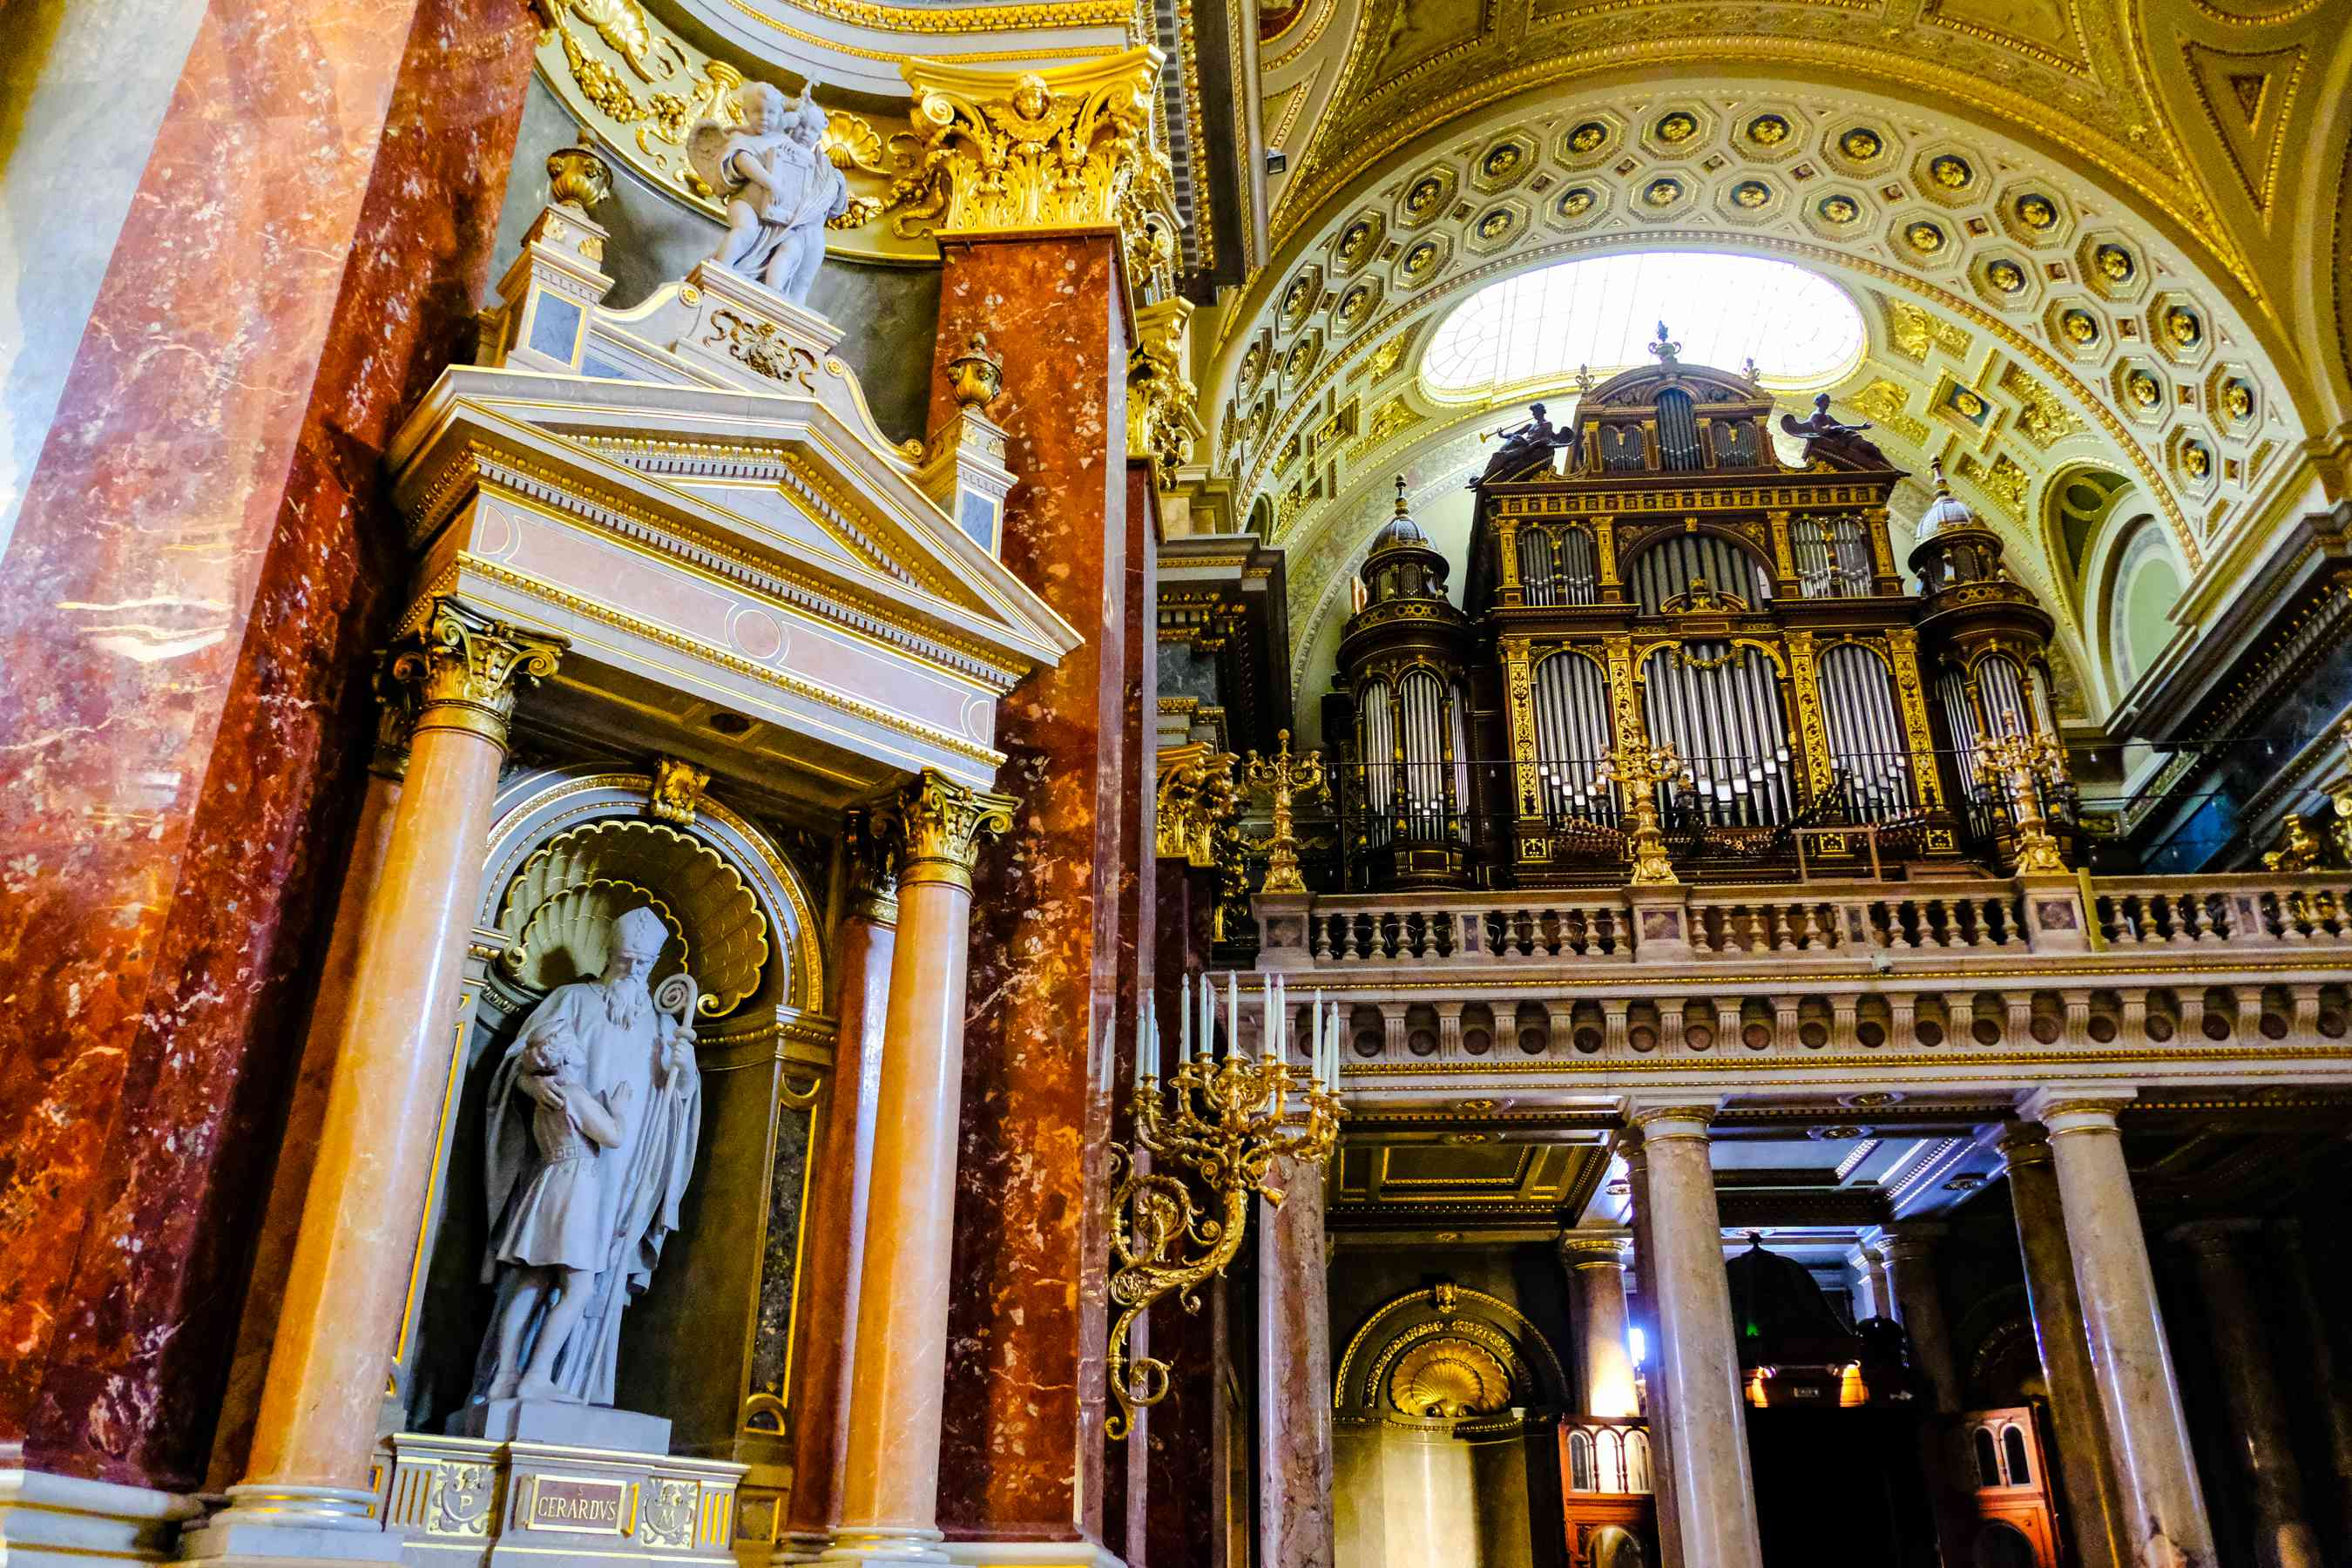 The inside ornate decorations of St Stephen's Basilica